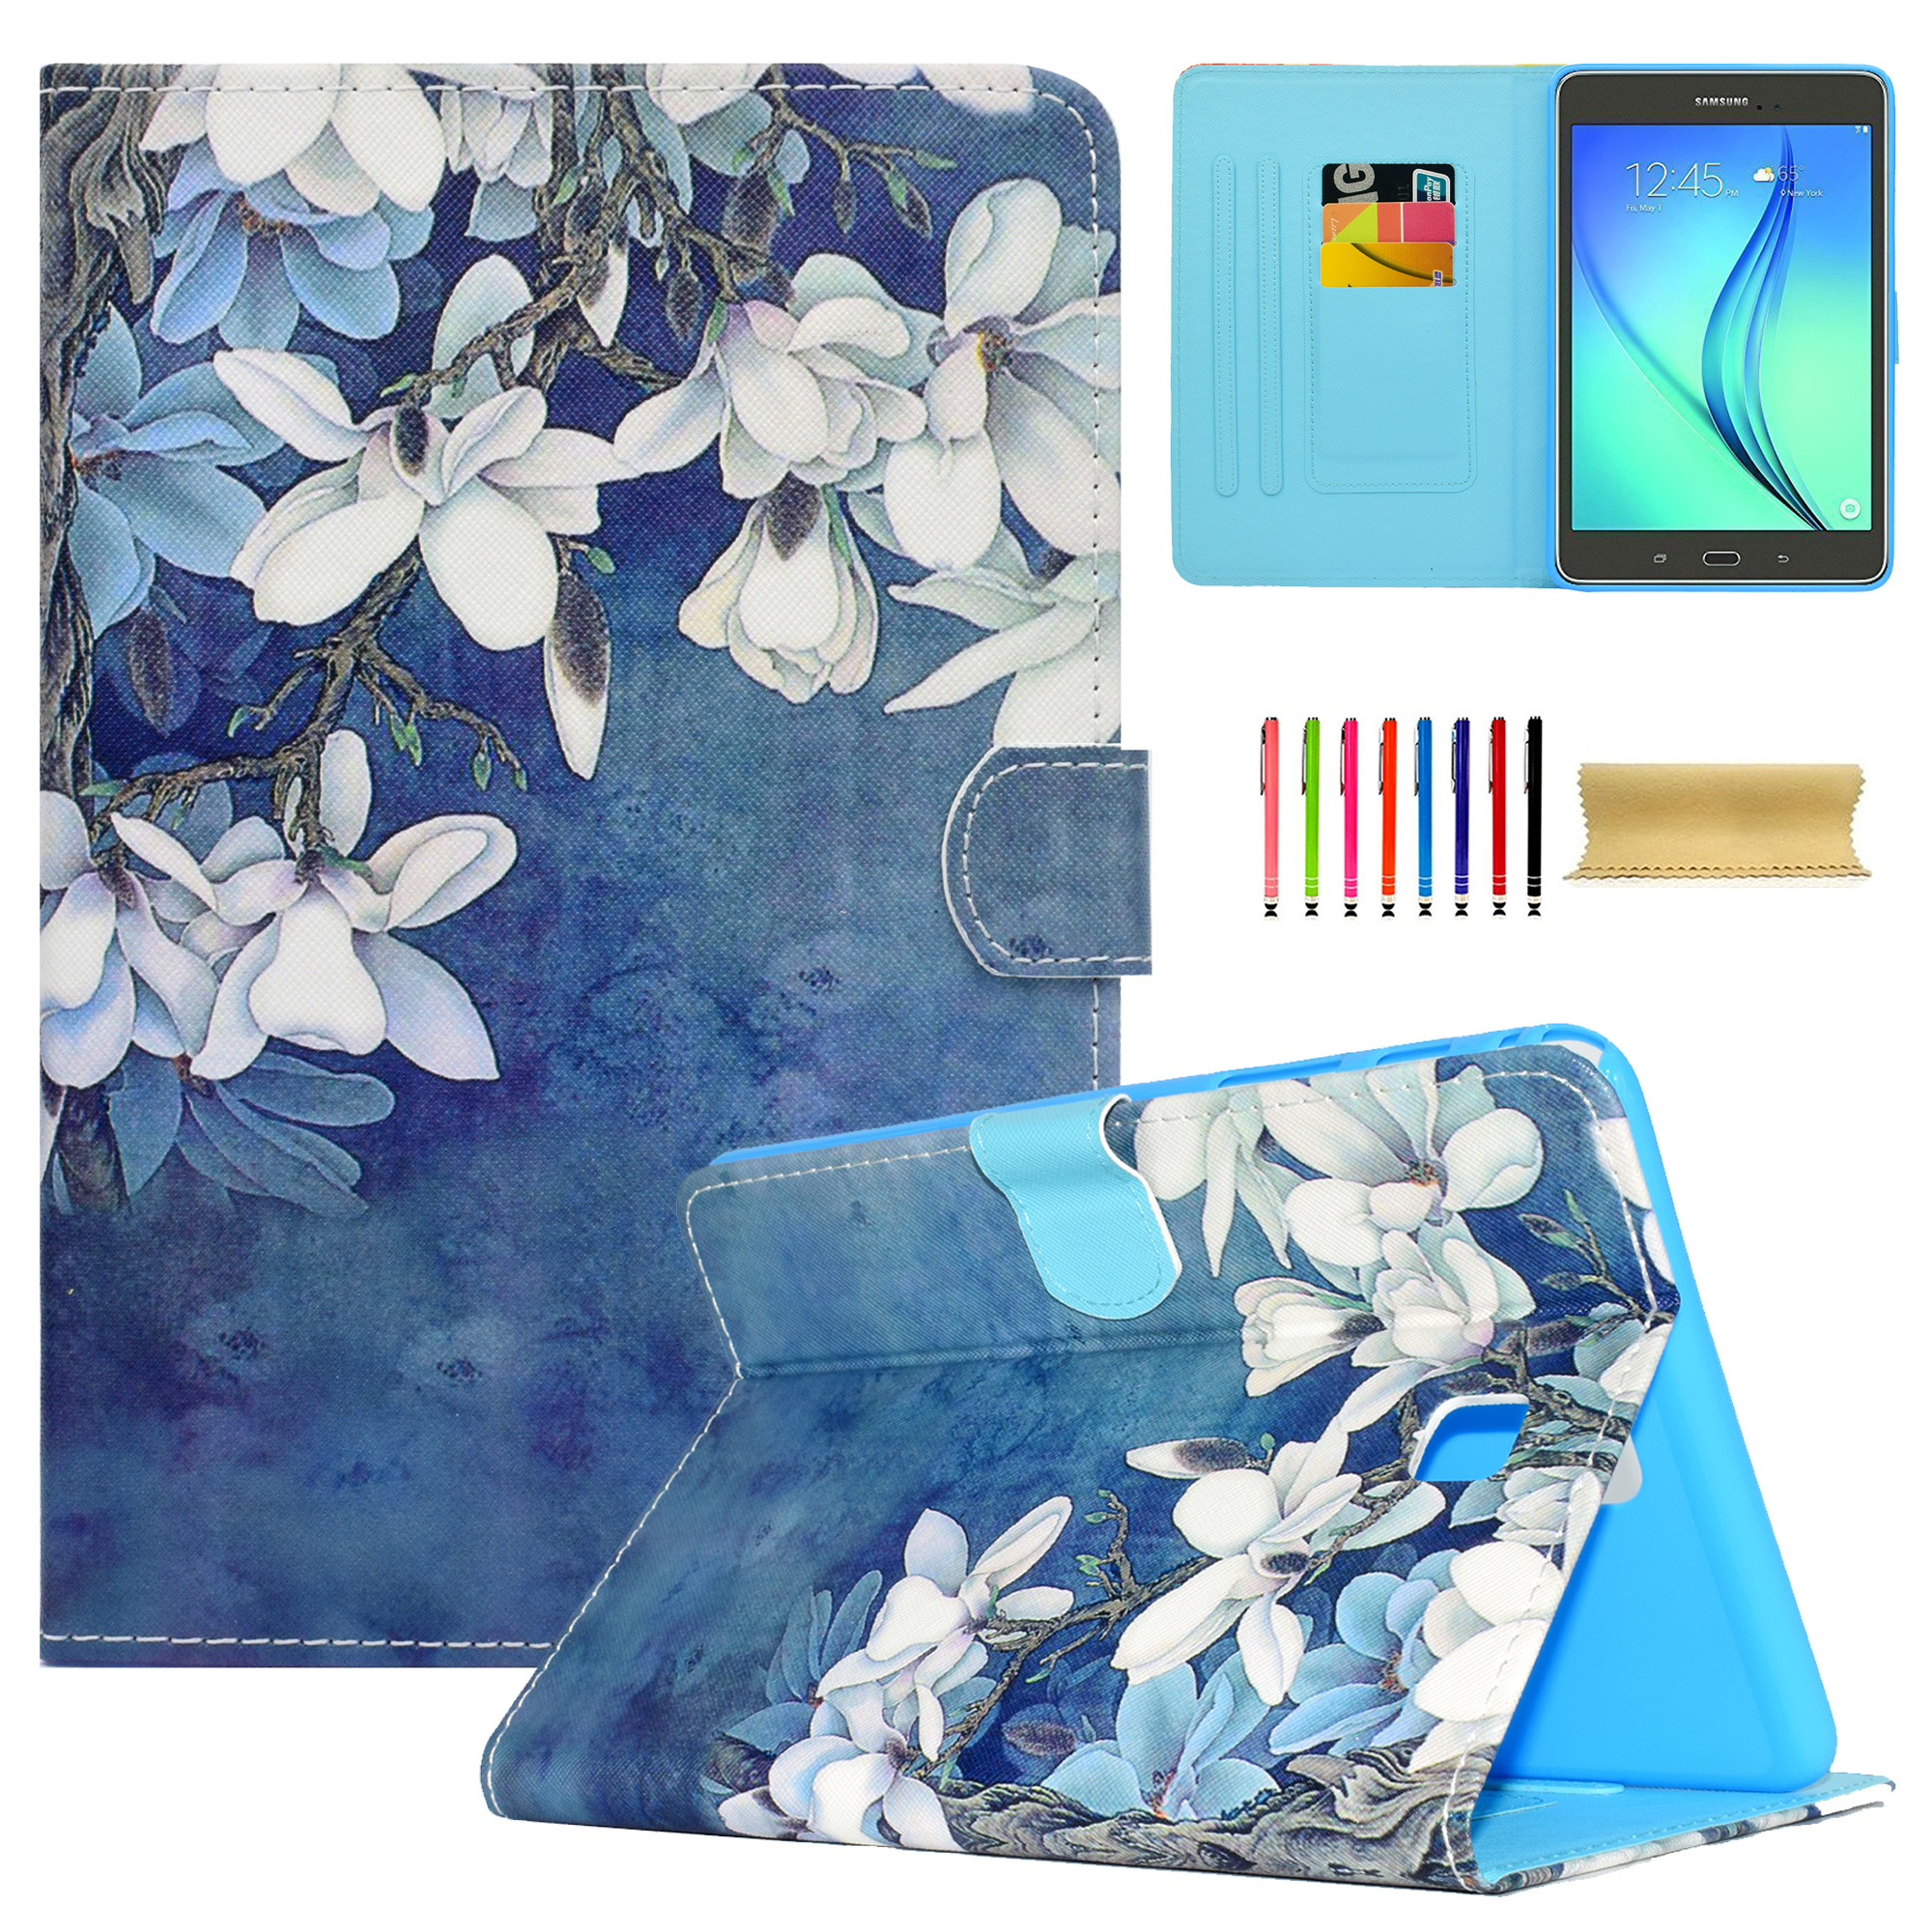 For Samsung Galaxy Tab A 8.0 Inch (SM-T350/P350) Tablet Case, Goodest PU Leather Folio Kids Friendly Case with Card Slot [Anti-slip Grooves] [Auto Sleep/Wake Function] Stand Cover, White Magnolias